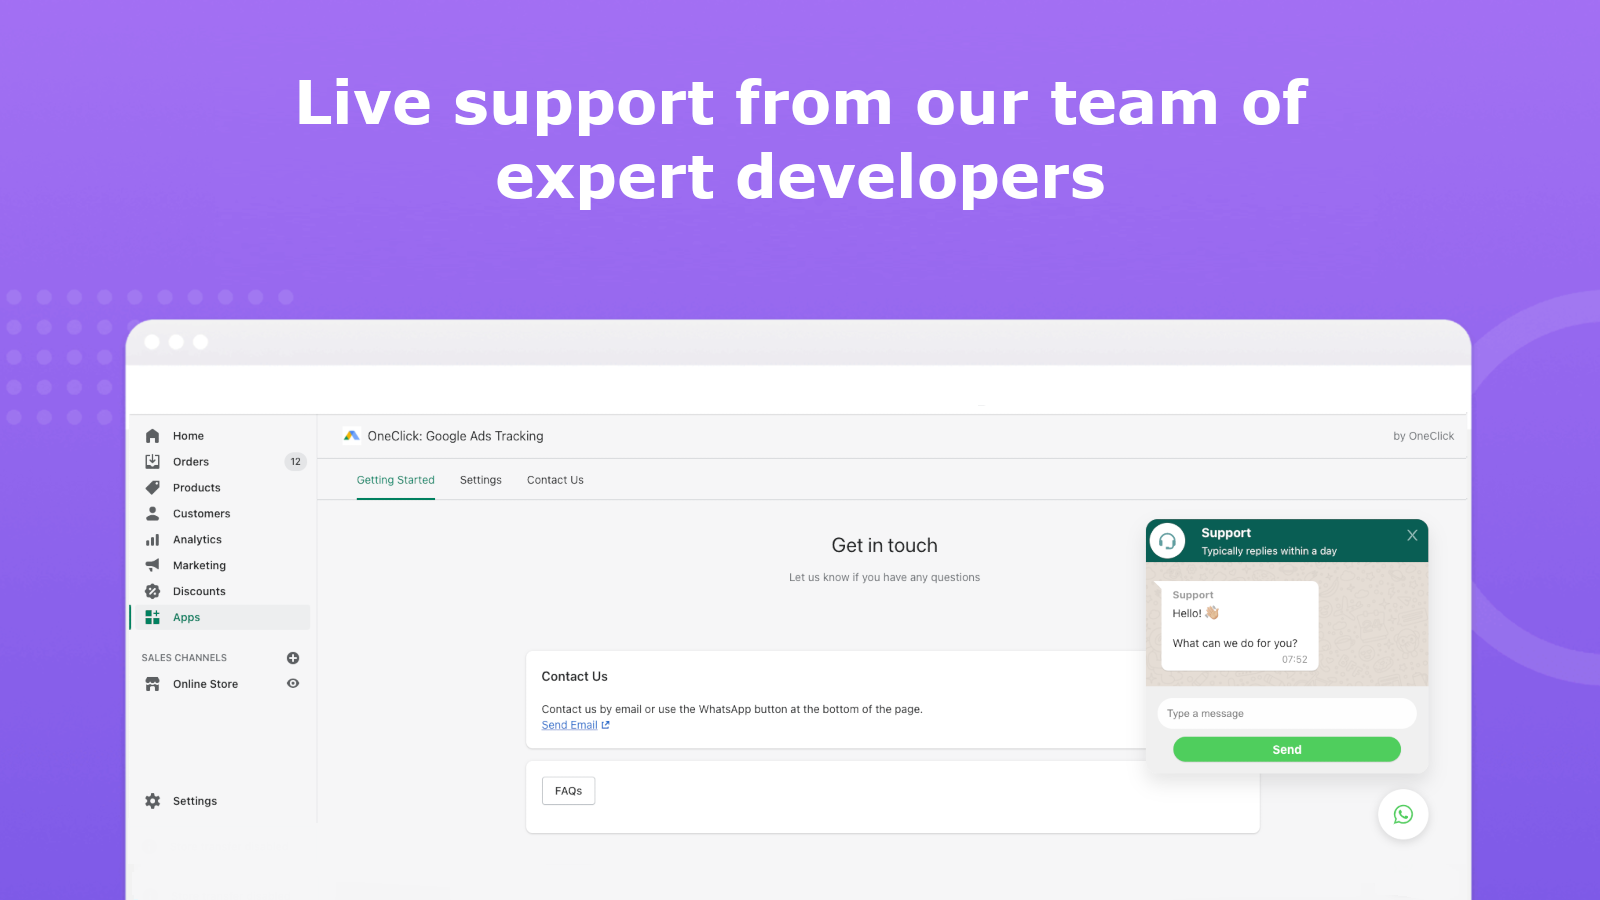 Live support from our expert developers